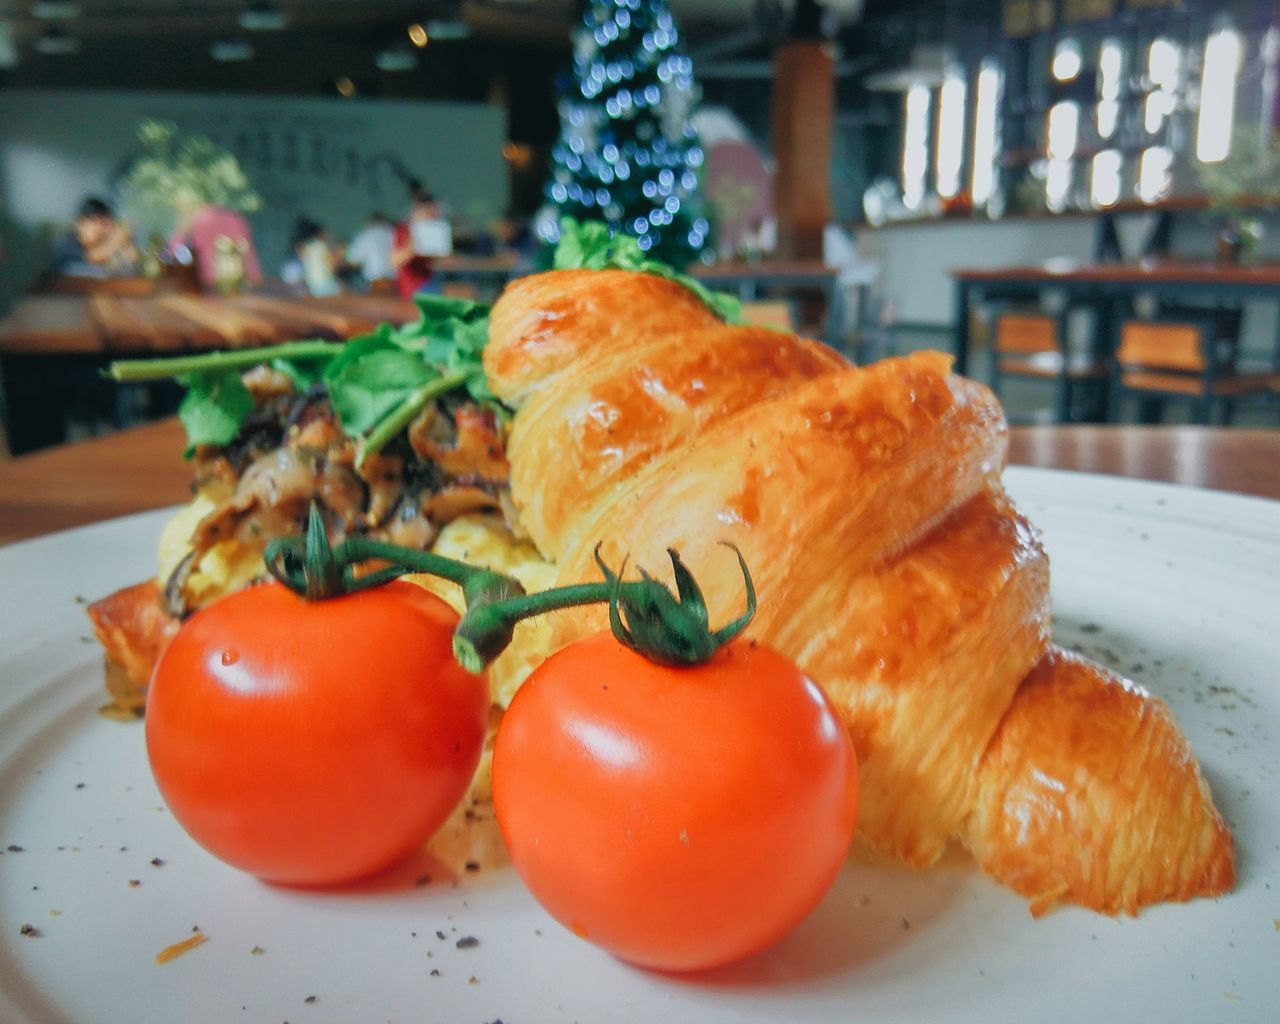 Crossaint Scrumbled Egg Tomatoes Yellow Orange Color Xmas Tree Focus On Foreground Healthy Eating Close-up Indoors  No People Freshness Food Plate Vegetable Wooden Tables Wooden Chair Bread Mushroom